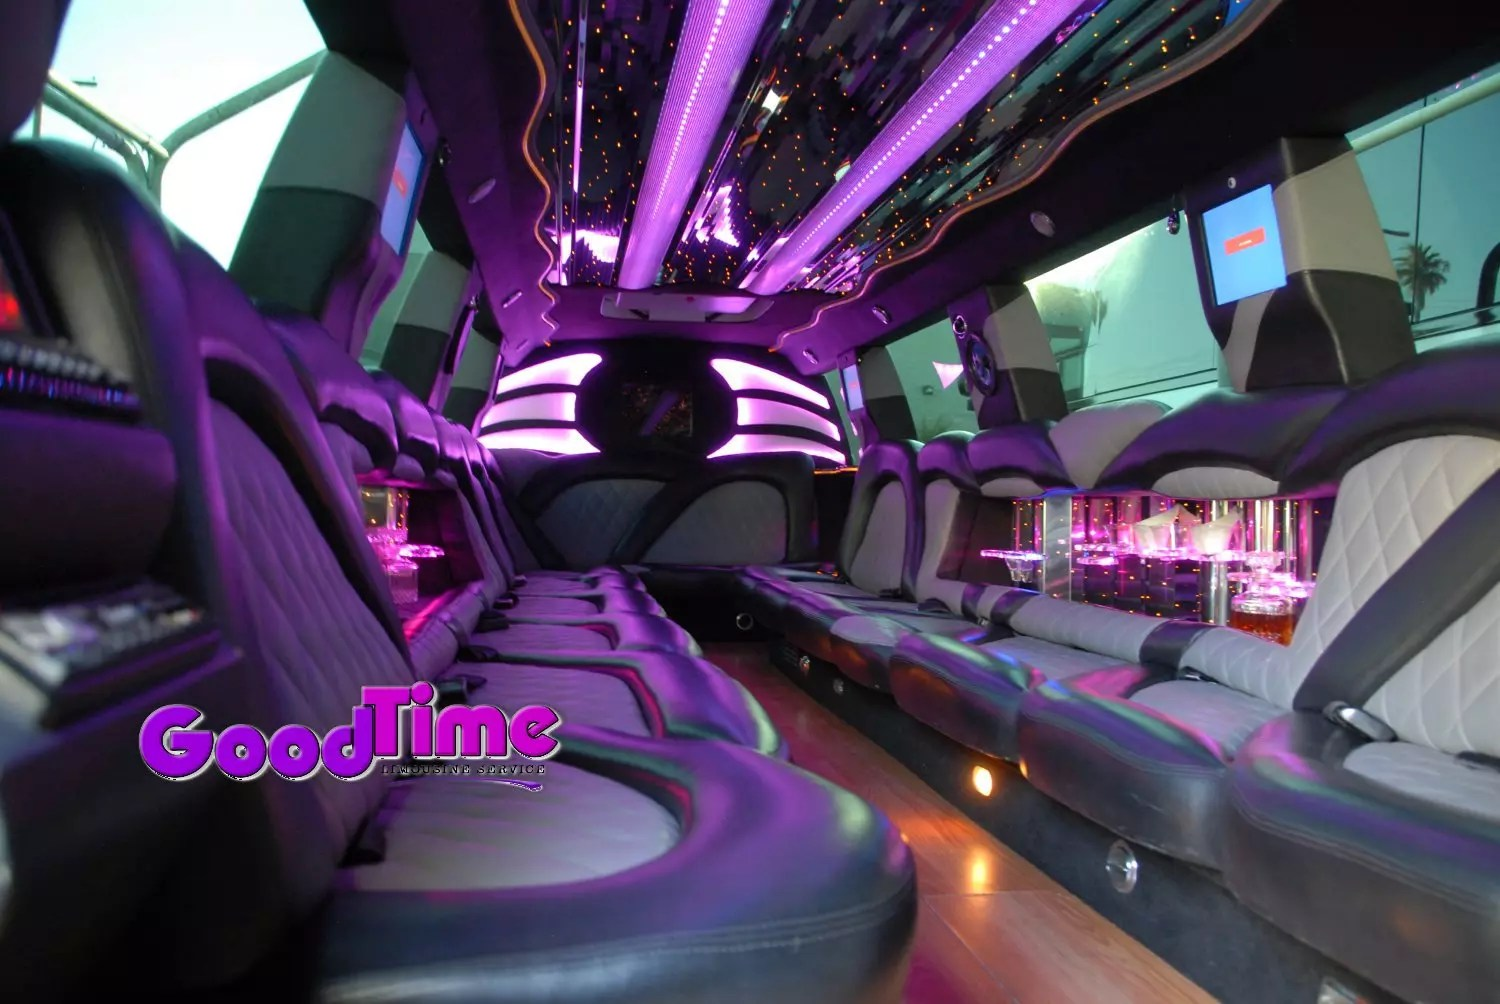 cadillac escalade suv stretch limo 22 passenger interior 2 2 LIMO RENTAL FLEET